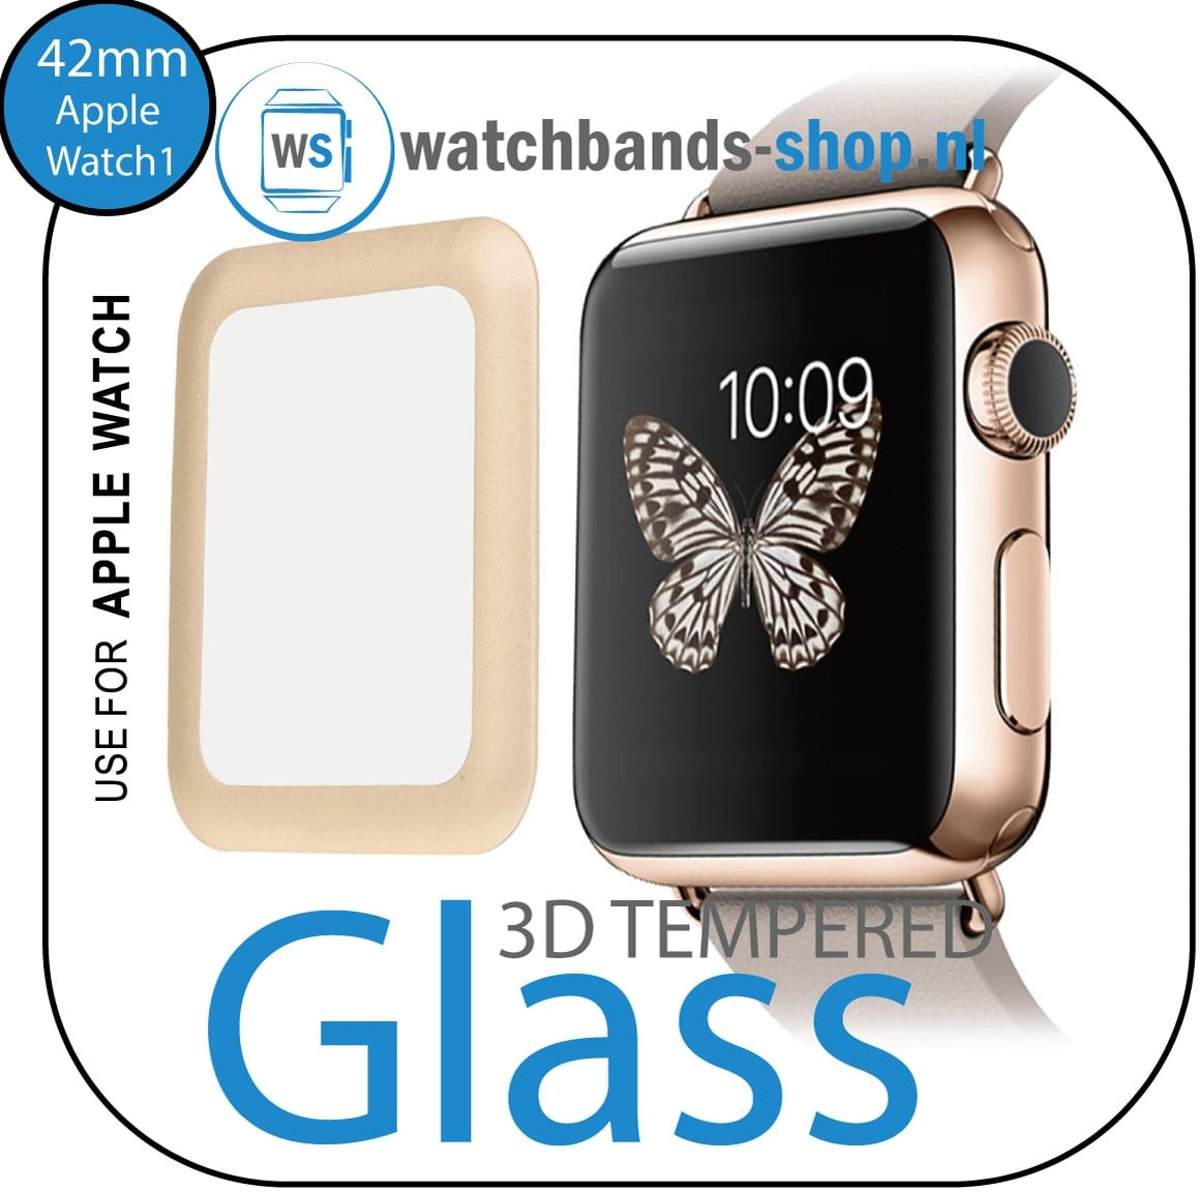 42mm full Cover 3D Tempered Glass Screen Protector For Apple watch / iWatch 1 golden edge   Watchbands-shop.nl kopen